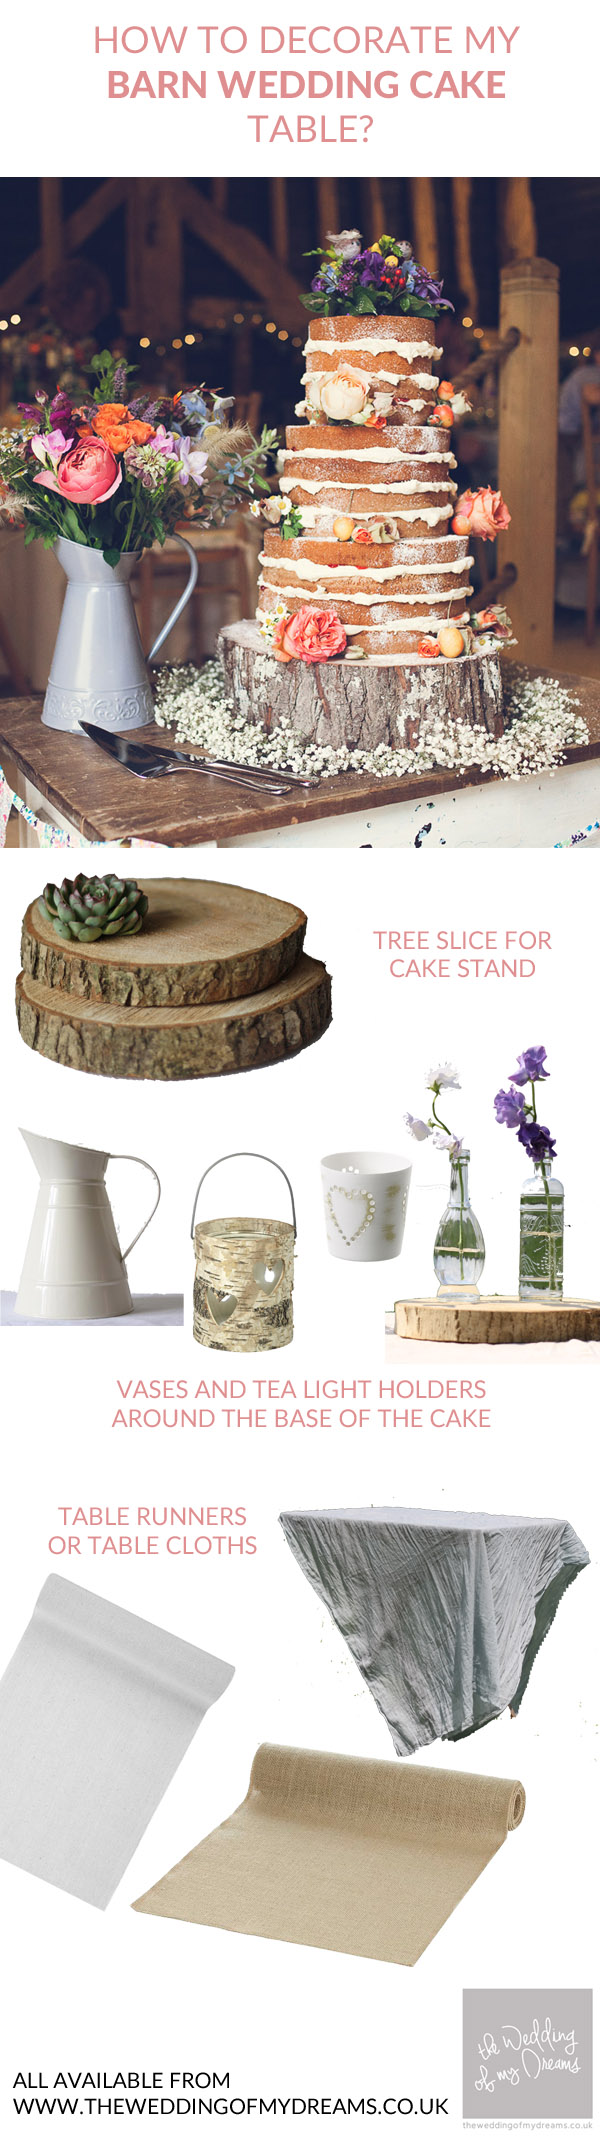 How should I decorate my rustic barn wedding cake table